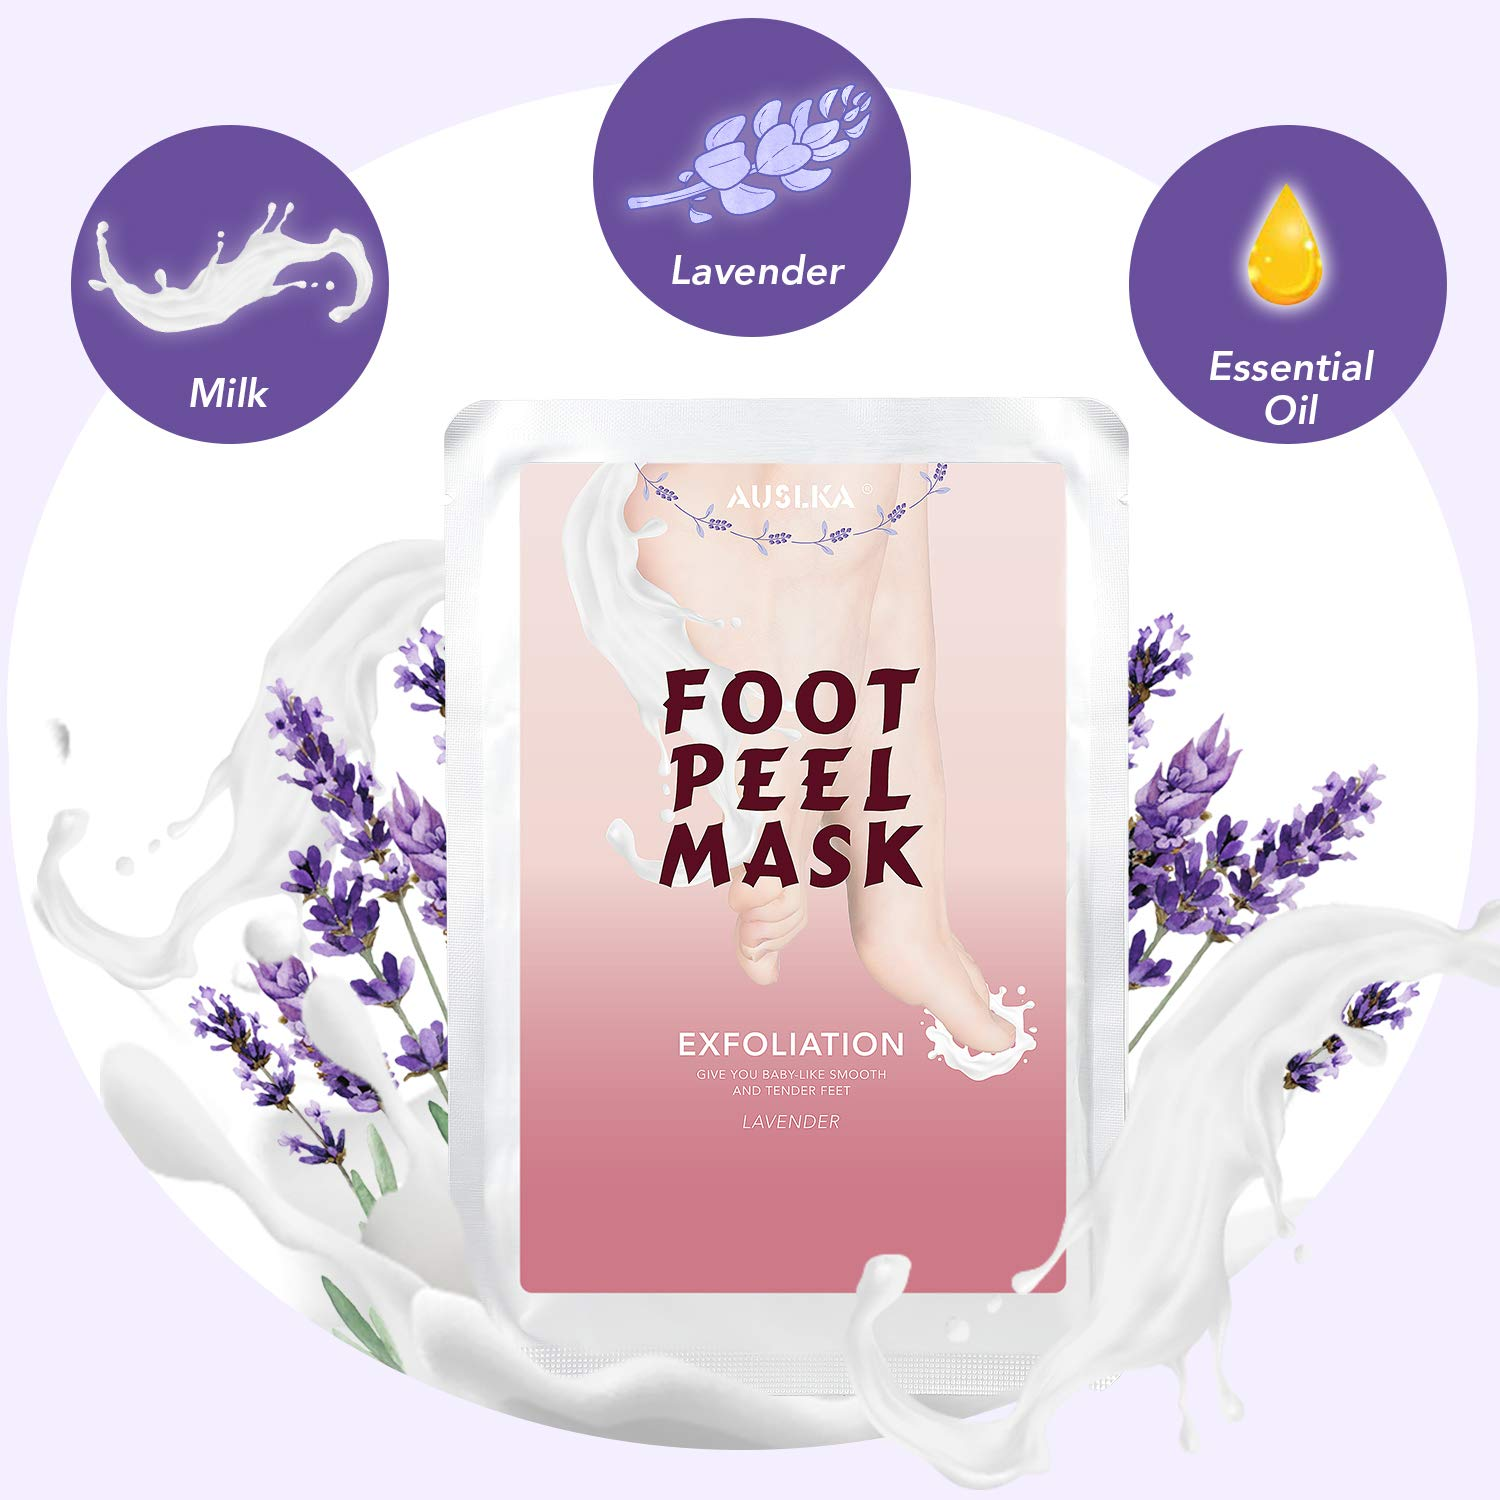 Foot Peel Exfoliating Mask 2 Pack, Exfoliant For Soft Feet Peeling, Rid Dead Skin Cells, Supple And Intensely Hydrated